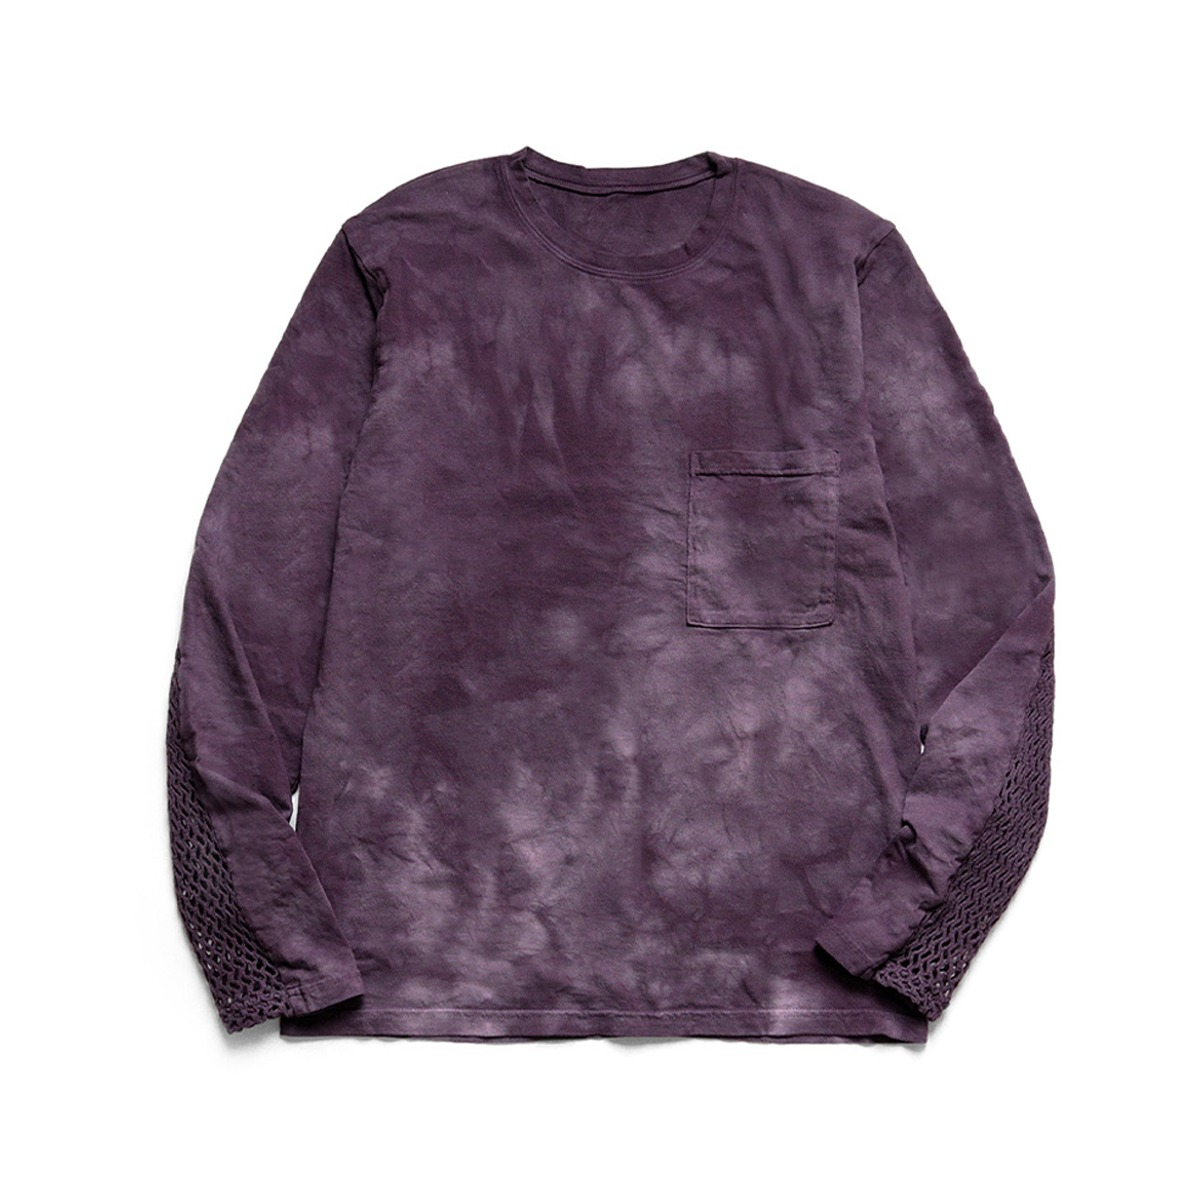 [KAPITAL] 20/-JERSEY KATABIRA LONG SLEEVE T (BACK SLEEVE) 'AUBERGINE'